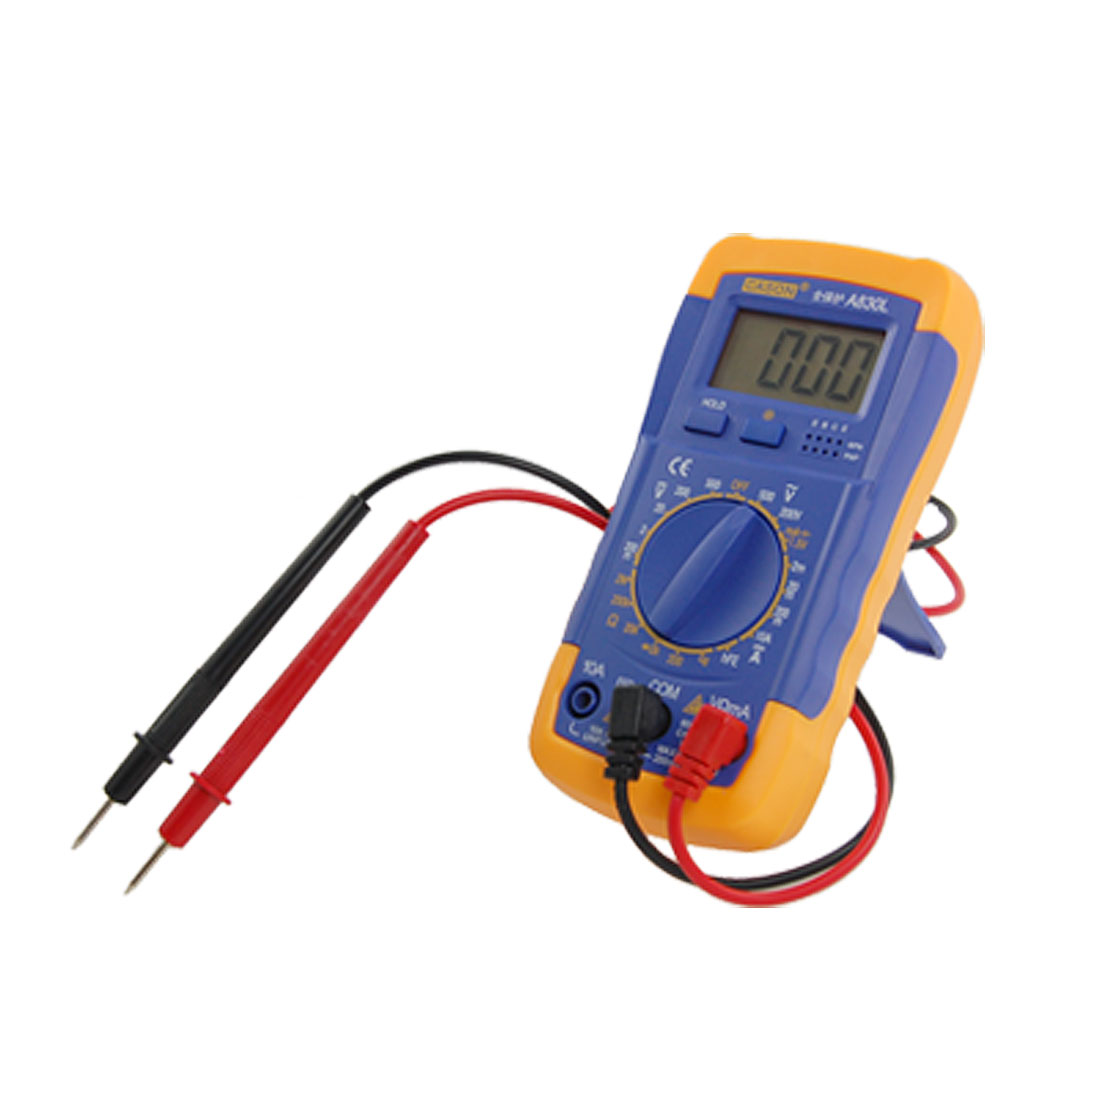 Unique Bargains Pocket Size Volt Amp Ohm Testing LCD Digital Multimeter at Sears.com